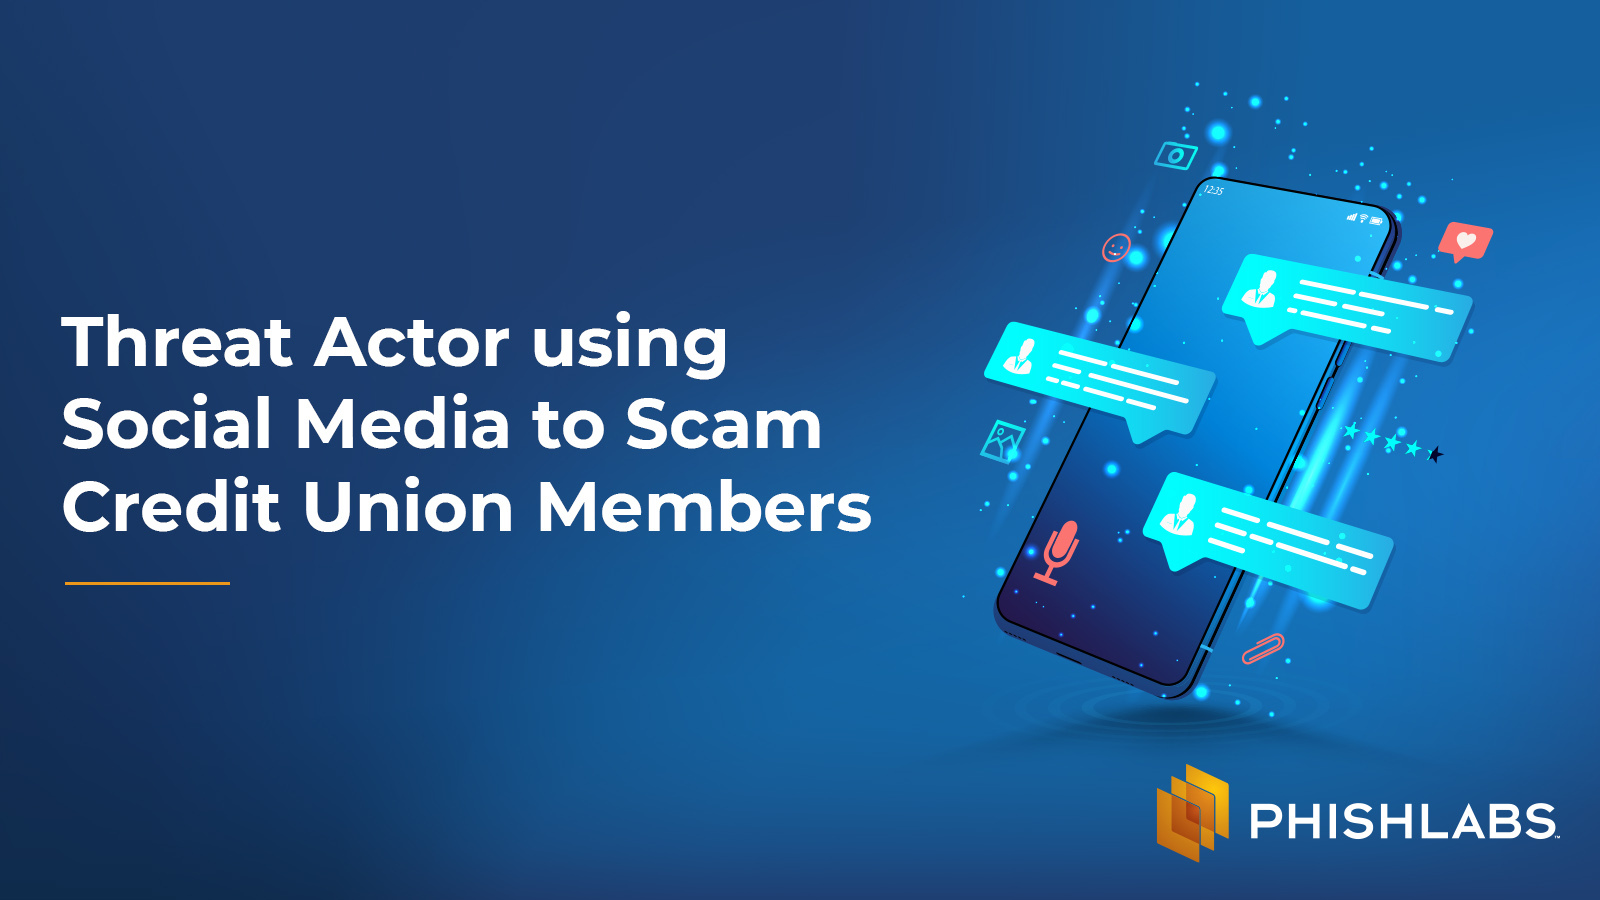 Threat Actor using Social Media to Scam Credit Union Members